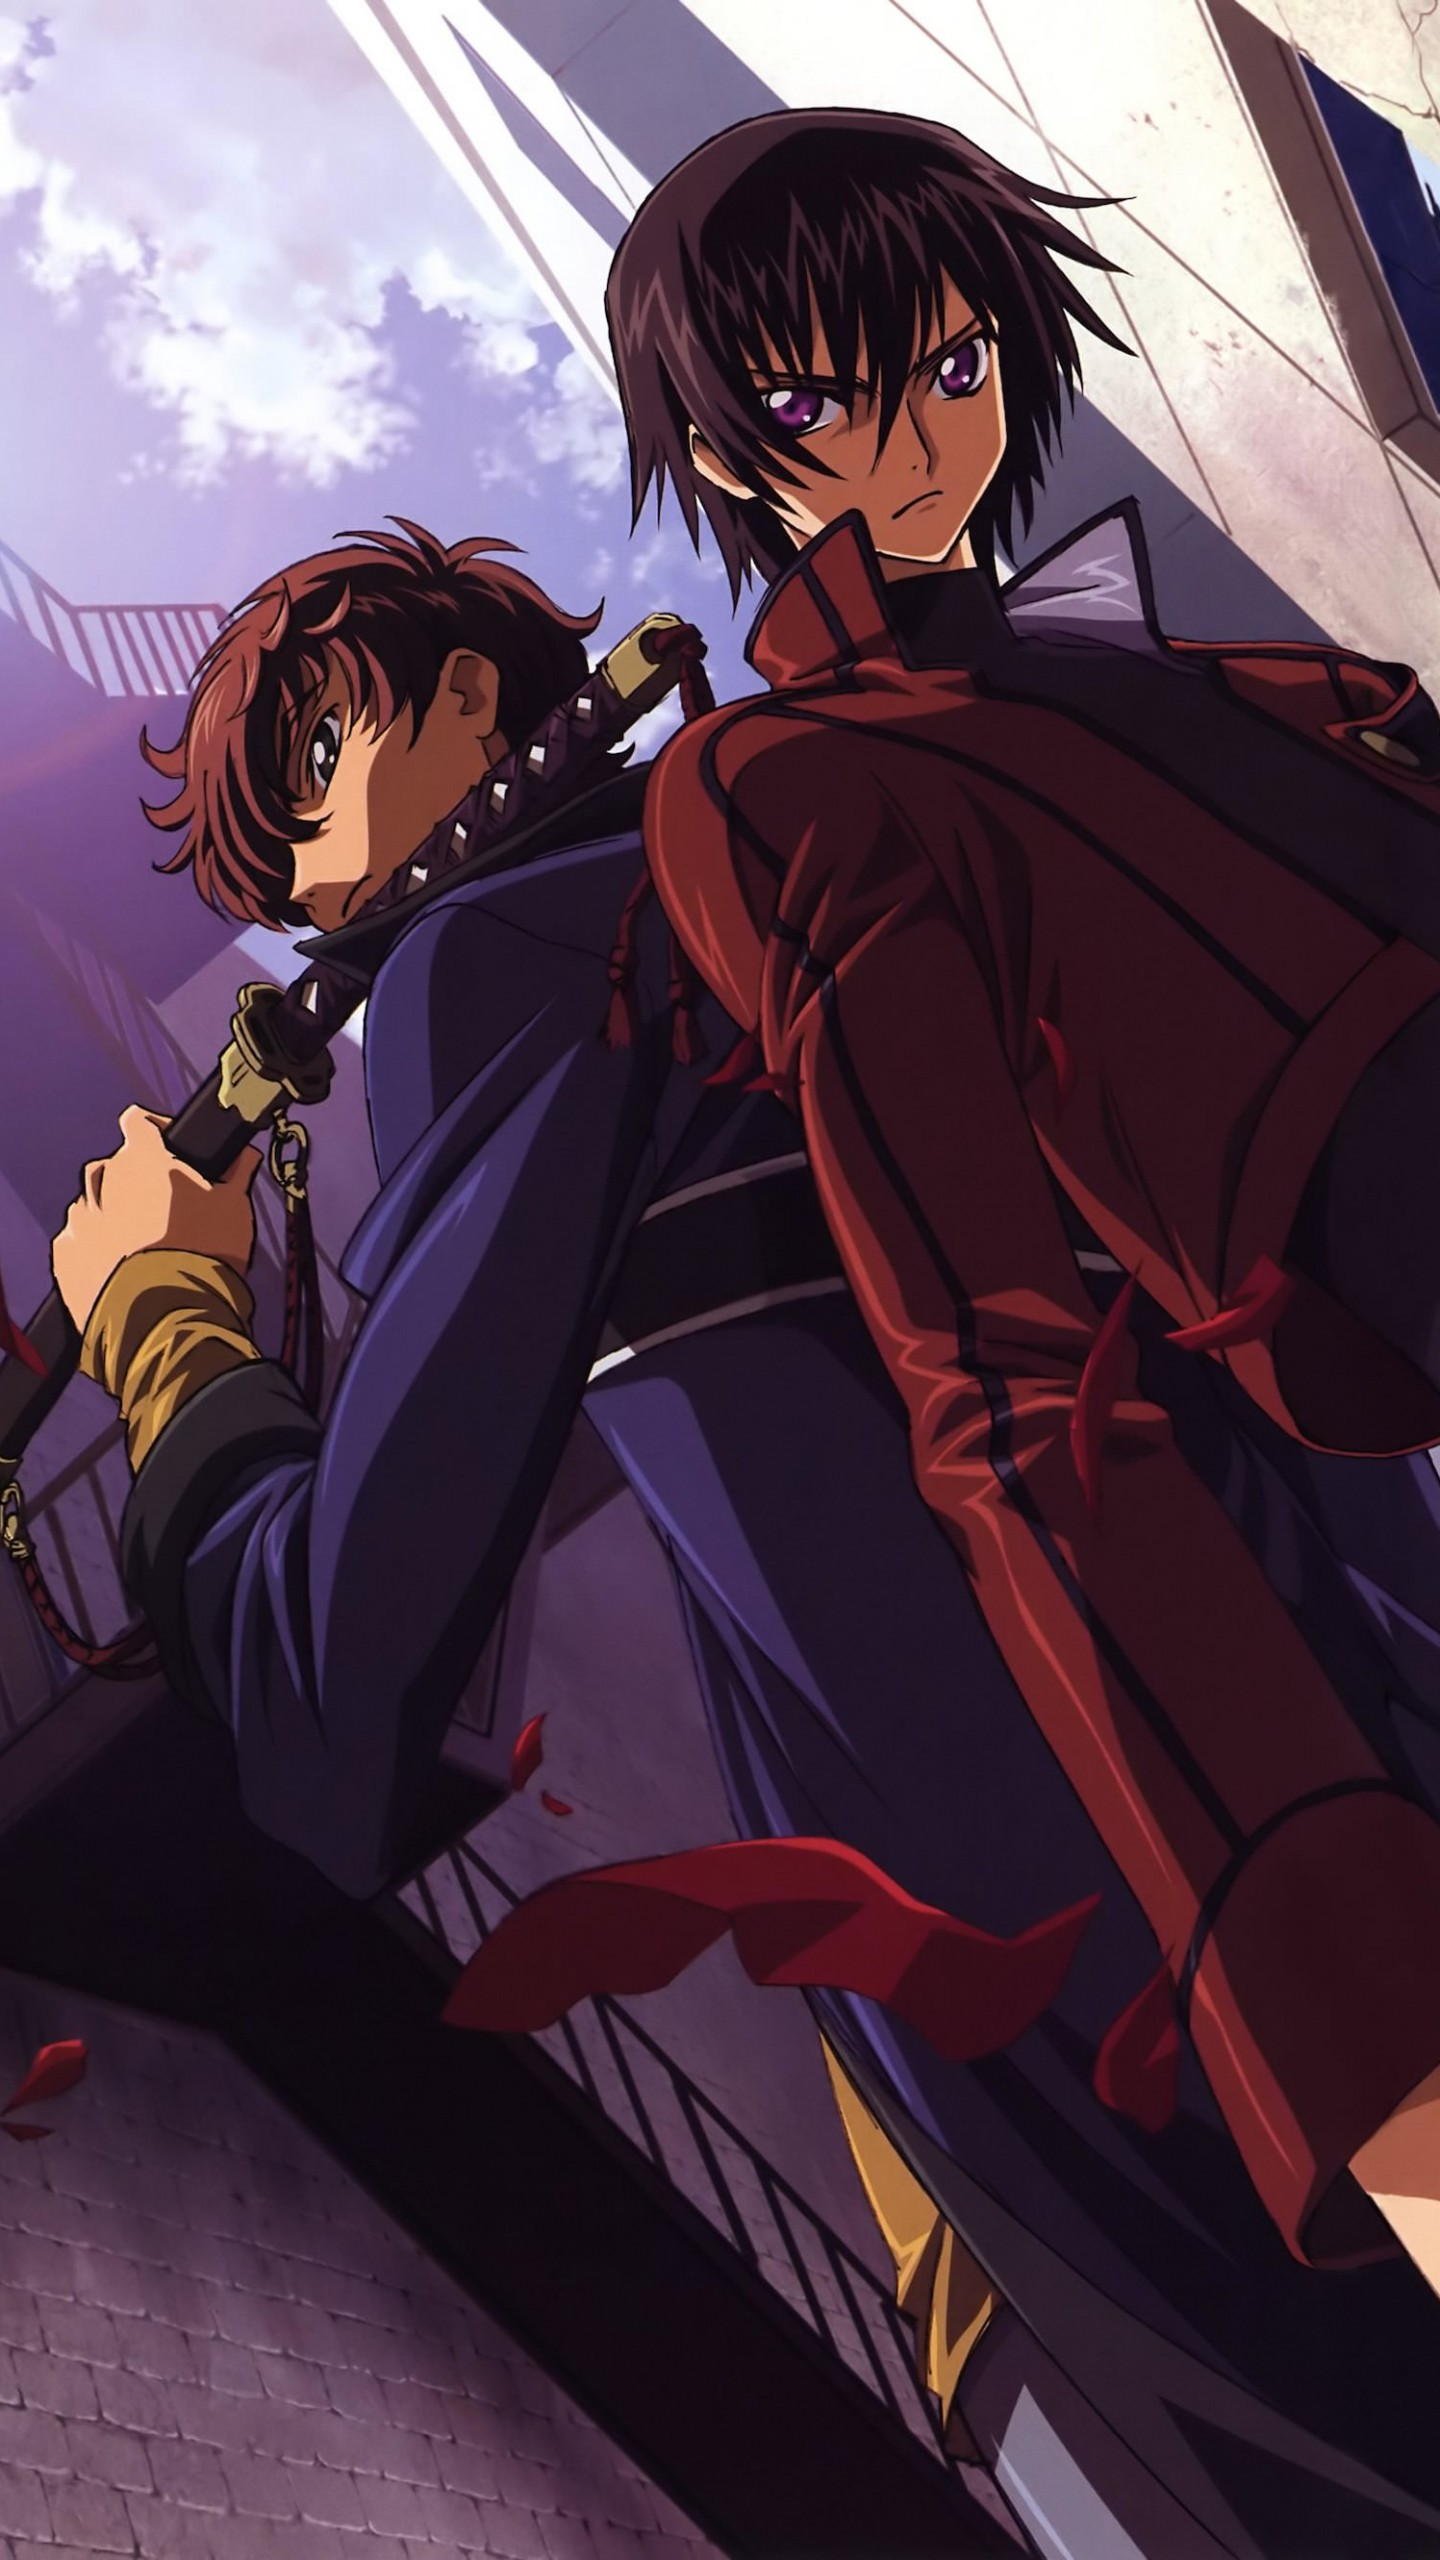 Code Geass Wallpaper for SAMSUNG Galaxy Note 4